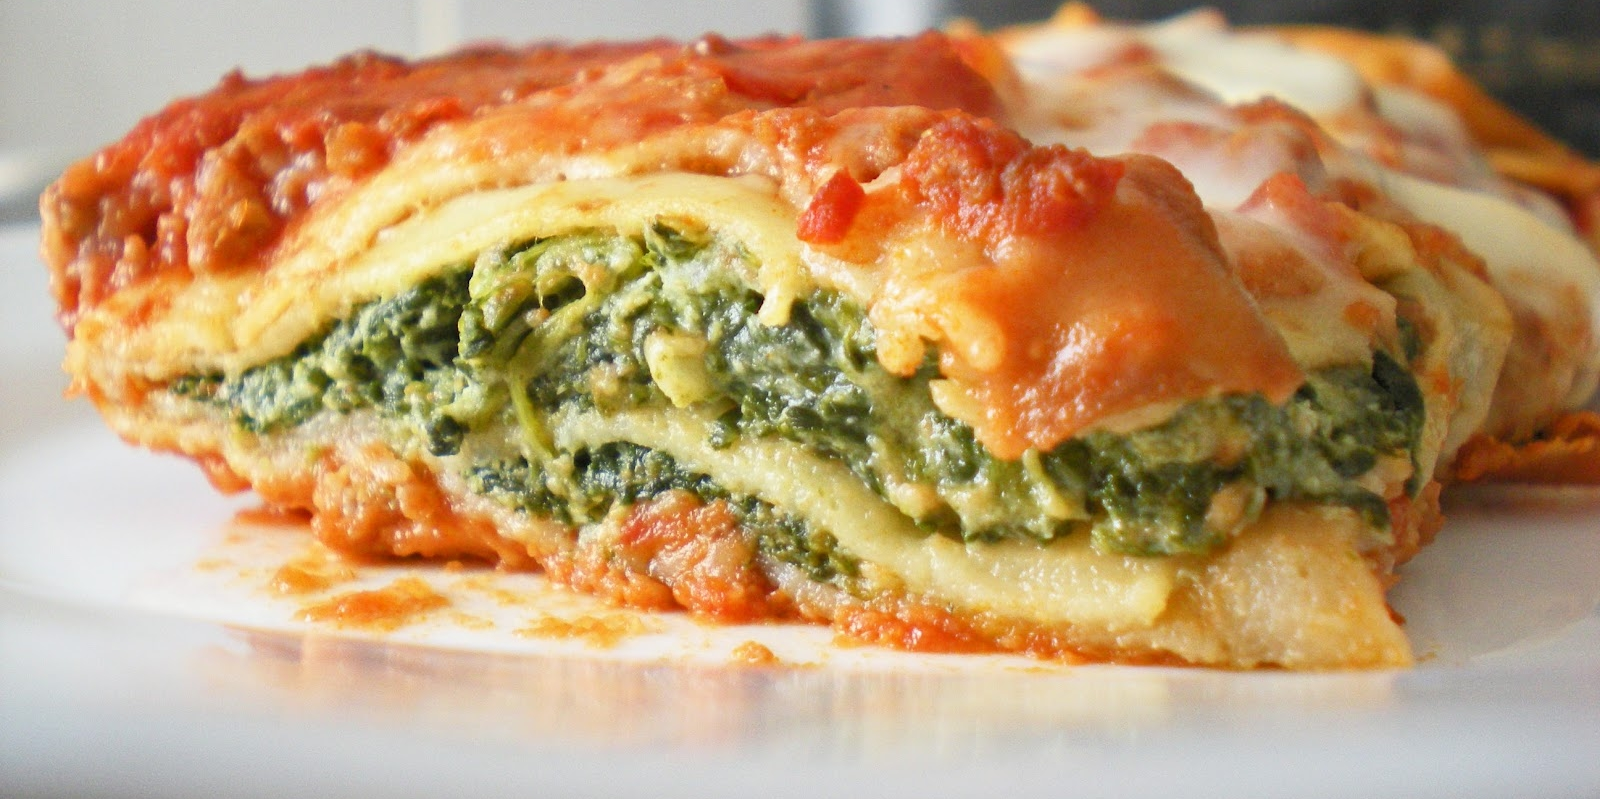 Spinach and Cheese Cannelloni with Roasted Tomato Sauce.